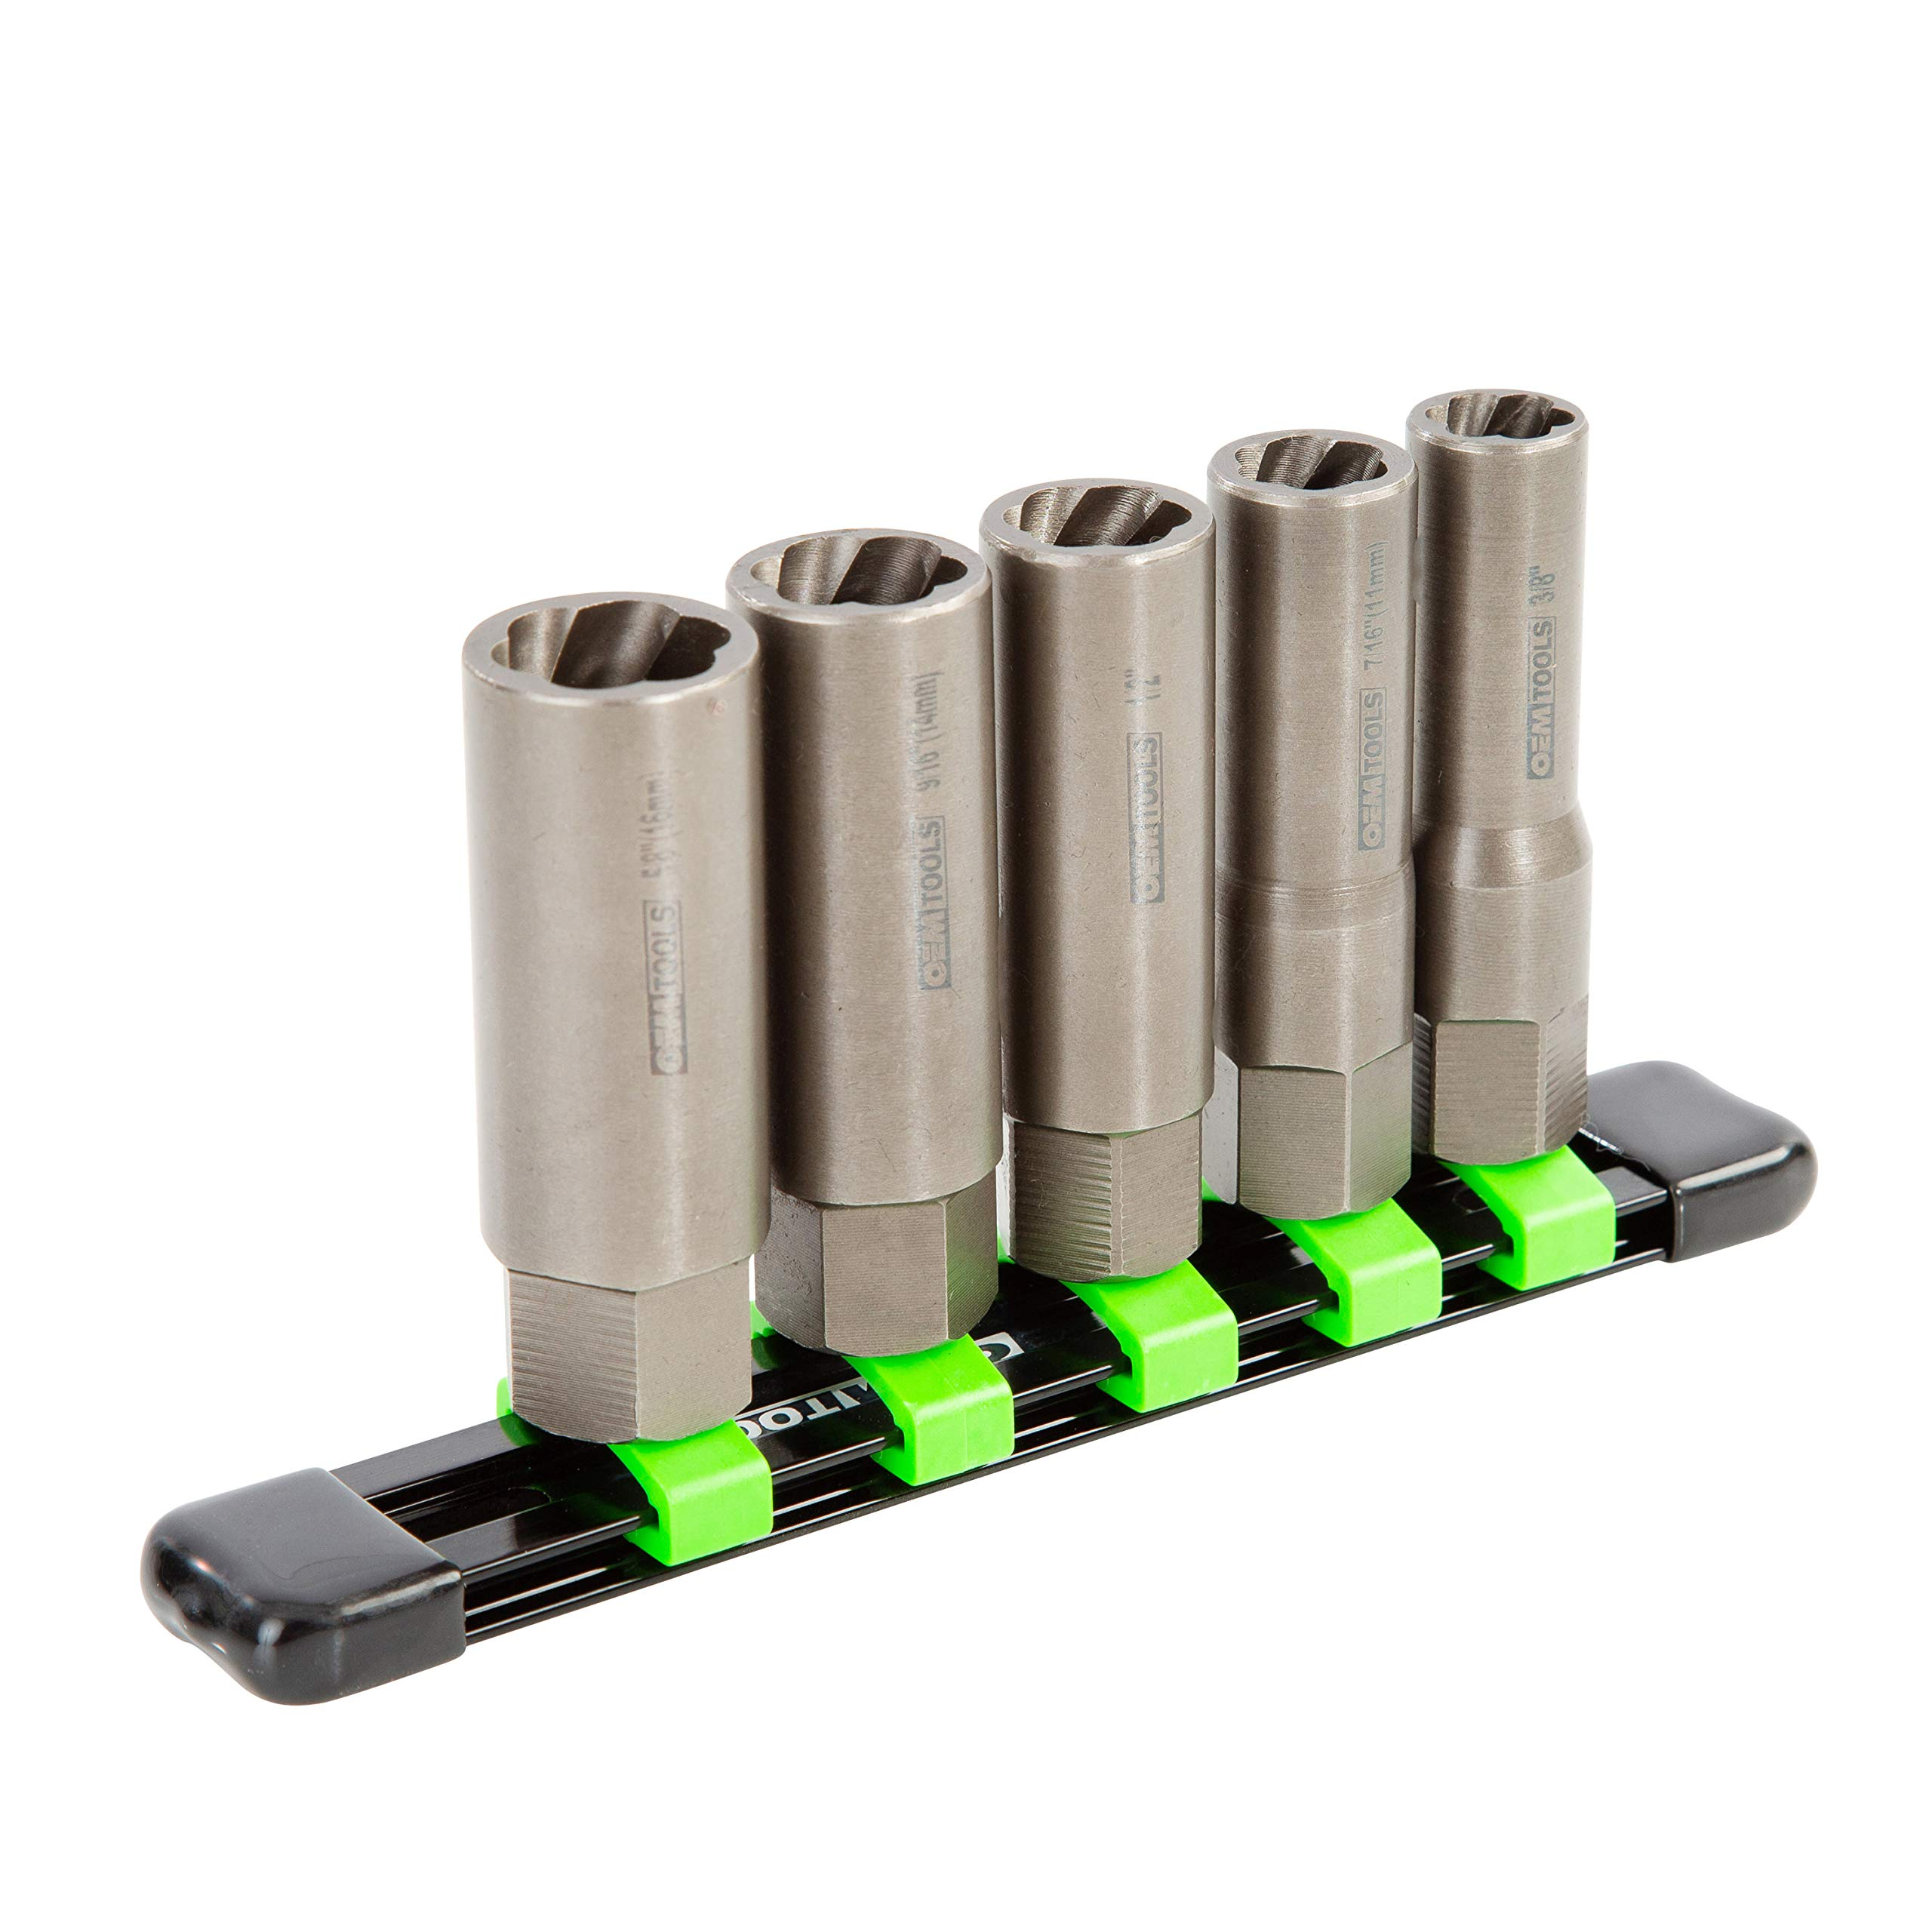 OEMTOOLS 22986 5 Piece Spiral Type Deep Extractor Set on Aluminum Rail by OEMTOOLS